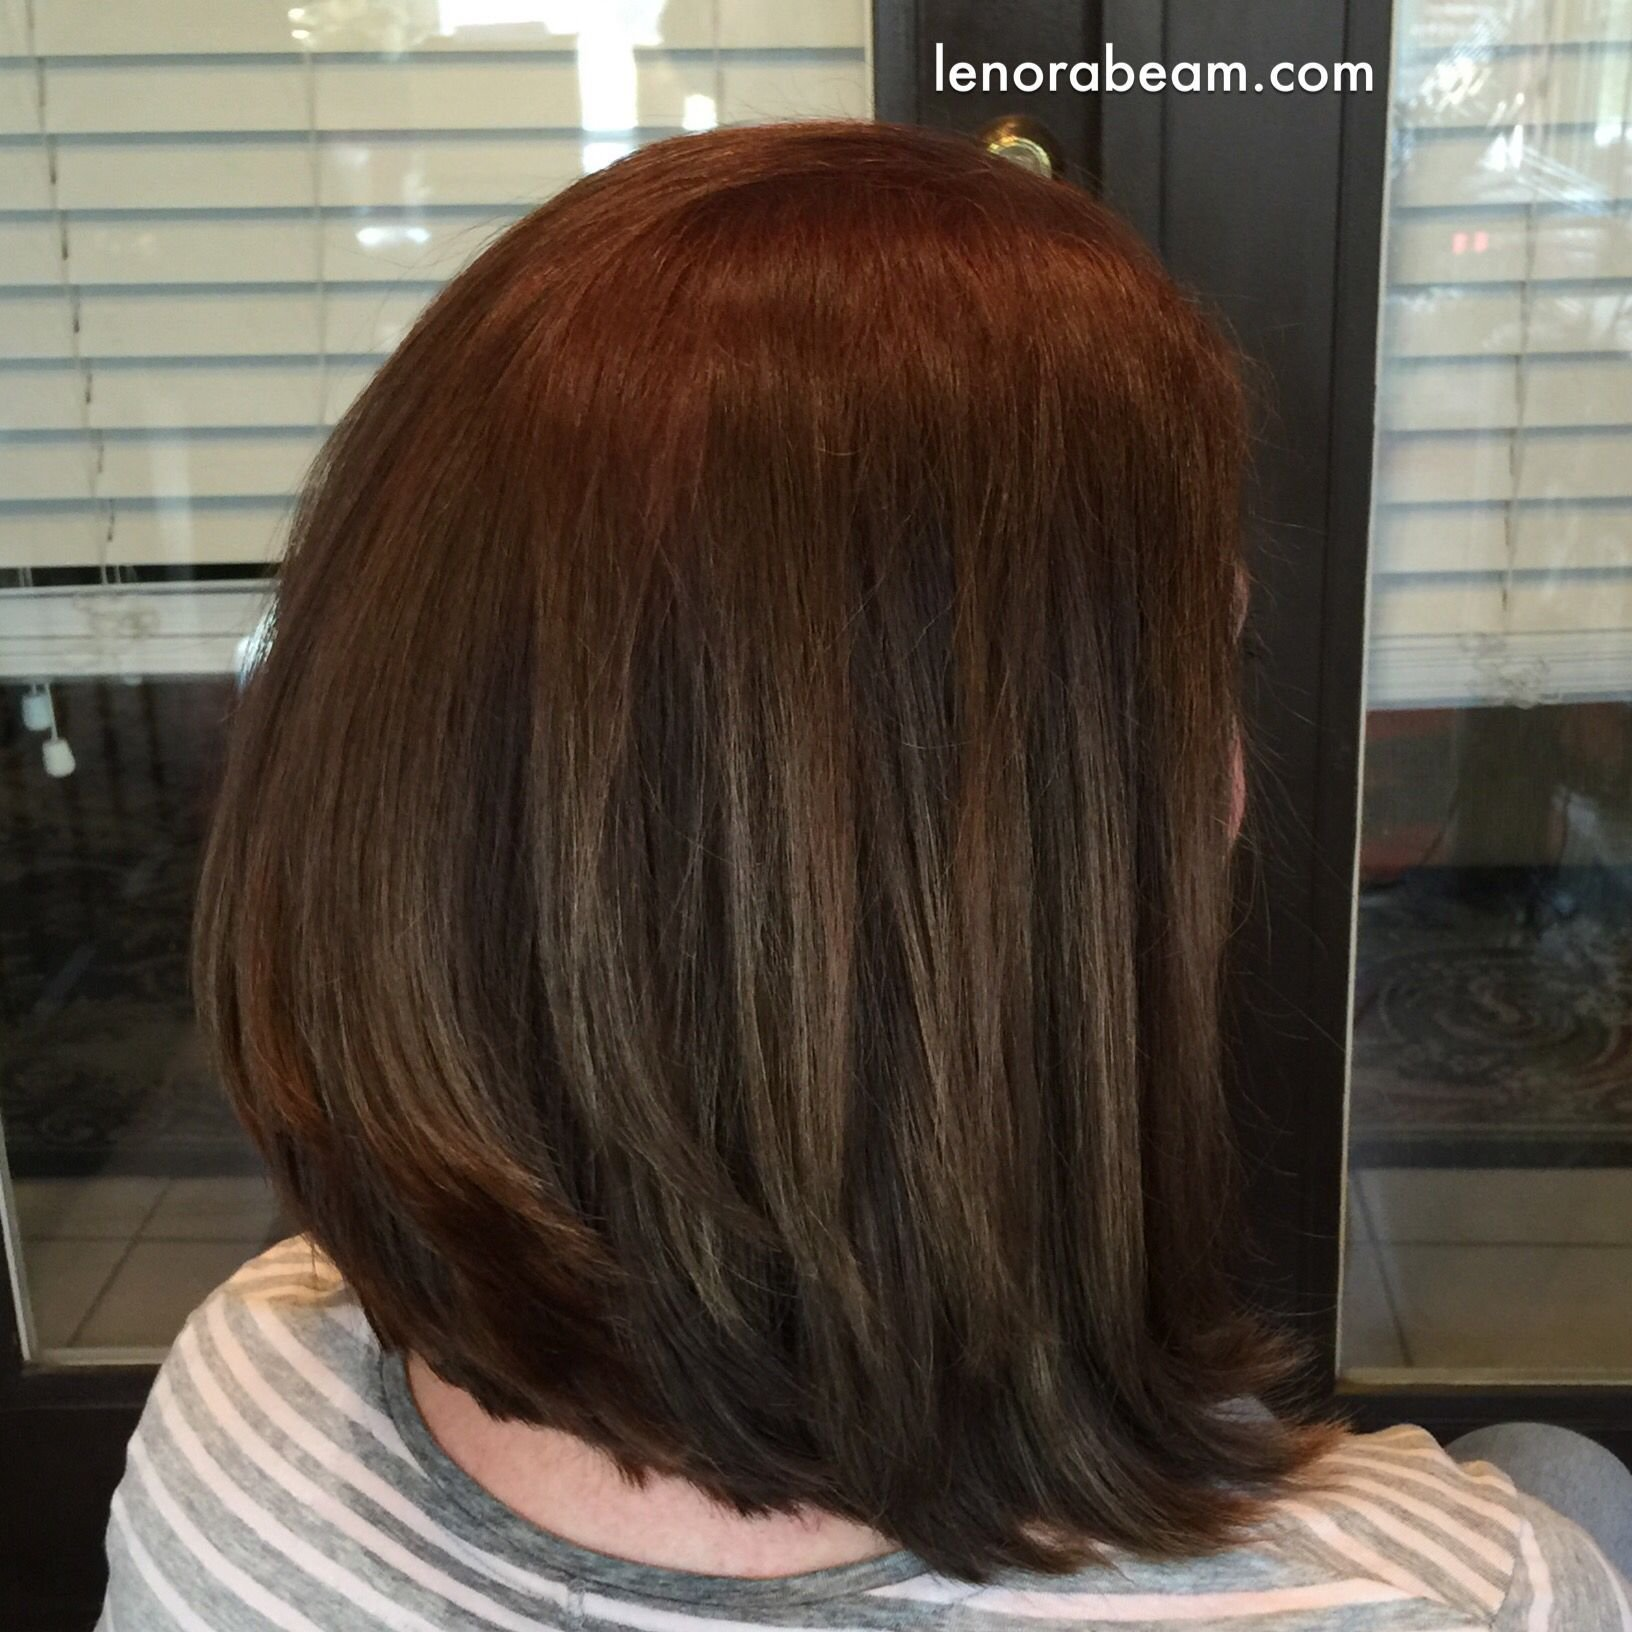 The Best Trendy Lob Haircut Haircolor Redken Color Fusion 6N Global Application And Lowlights Hair Pictures